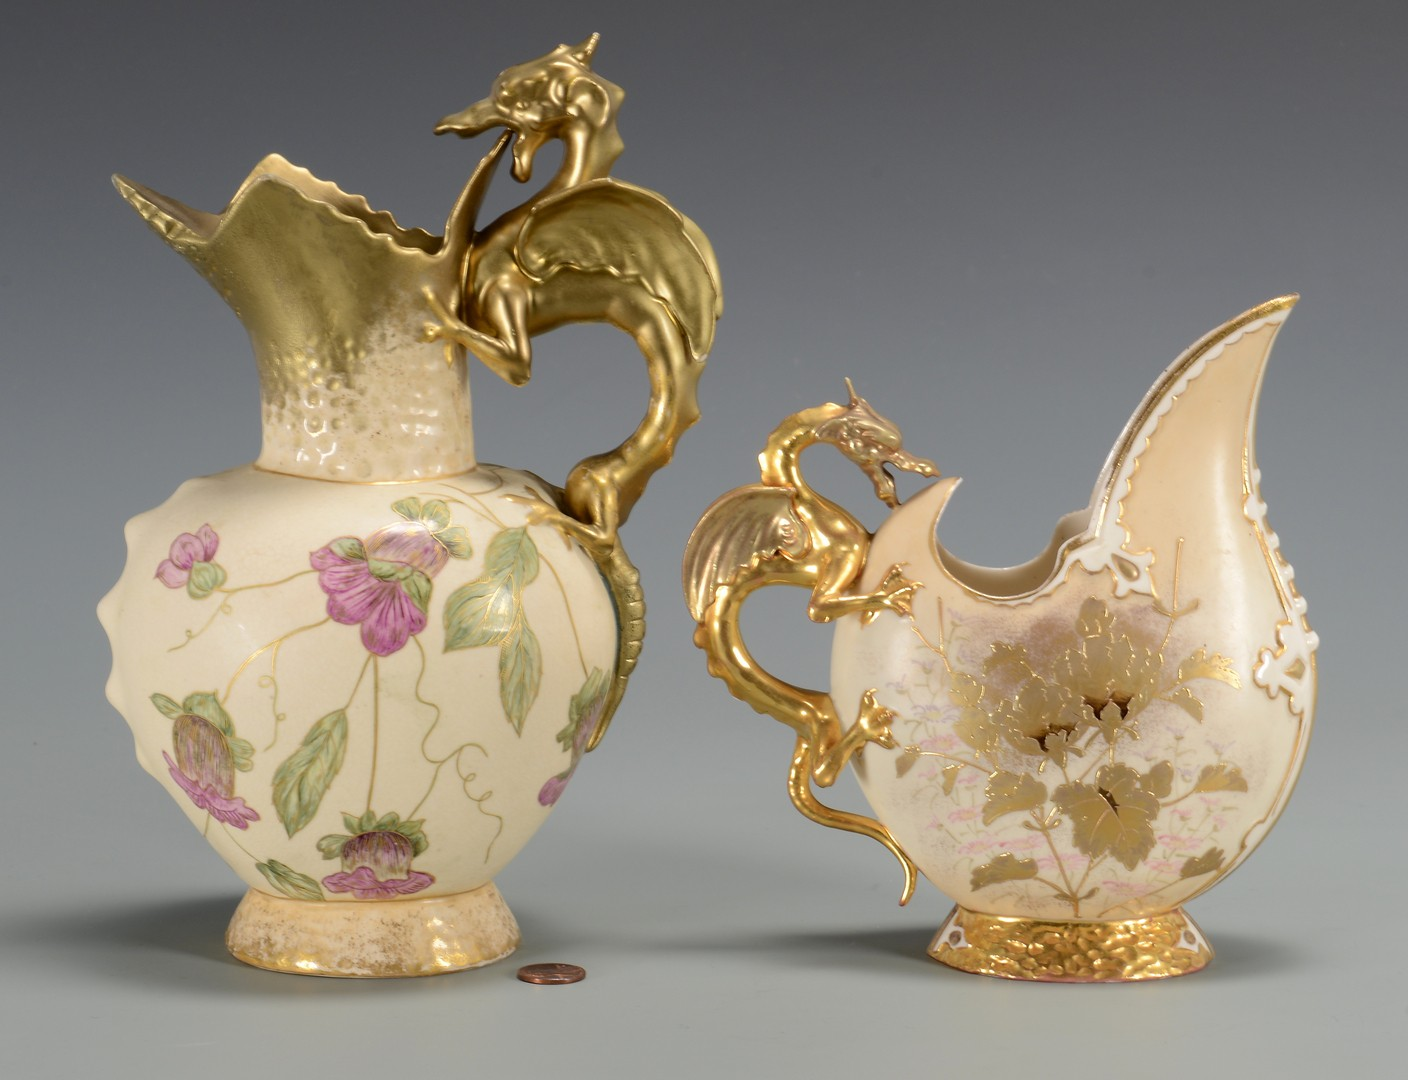 Lot 3594252: 2 Continental Porcelain Pitchers w/ Dragon Handles